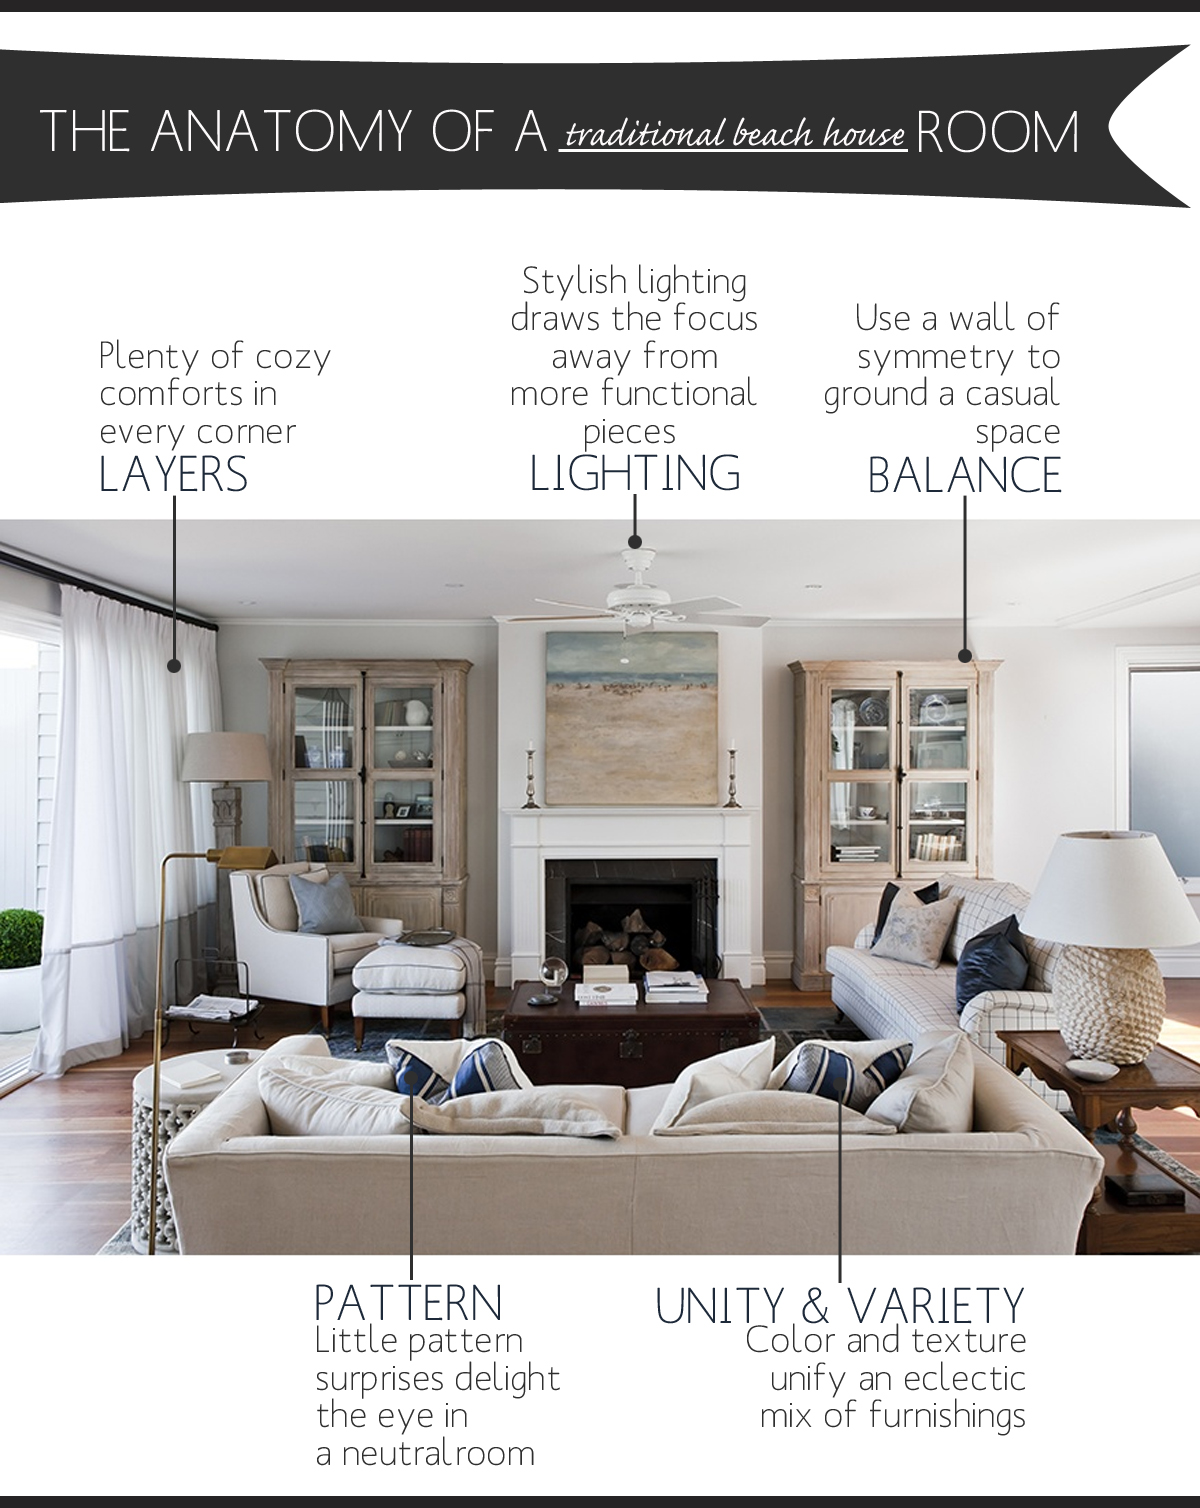 The Anatomy of a Traditional Beach House | The Anatomy of Design